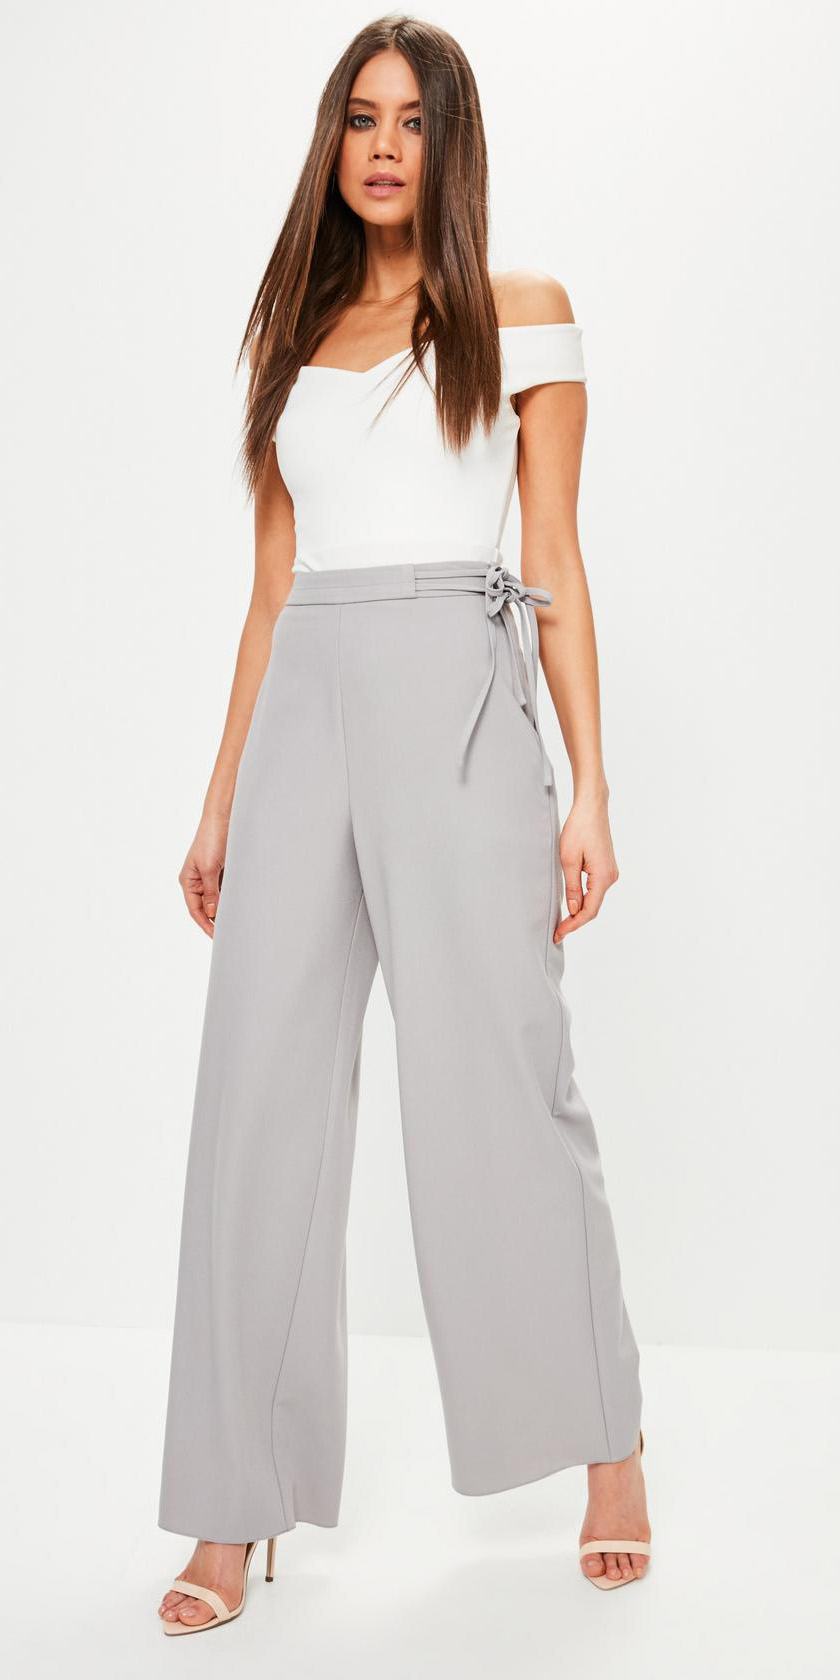 grayl-wideleg-pants-white-top-offshoulder-white-shoe-sandalh-spring-summer-hairr-dinner.jpg